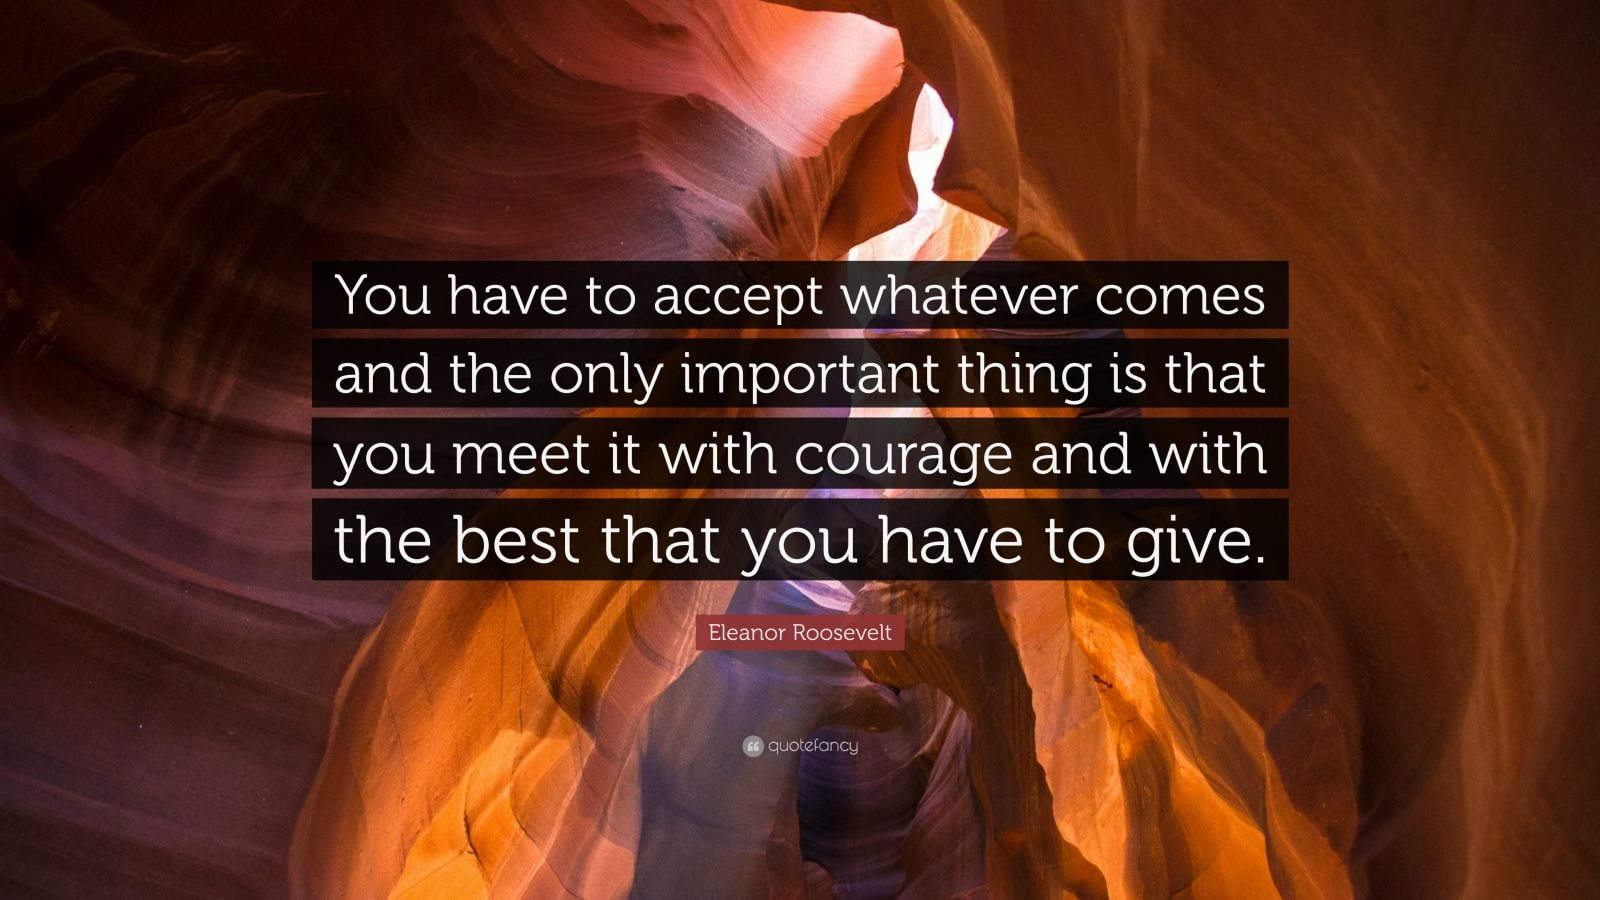 Top 25 Eleanor Roosevelt Quotes to Inspire Your Greatness ...  |Eleanor Roosevelt Quotes Wallpaper